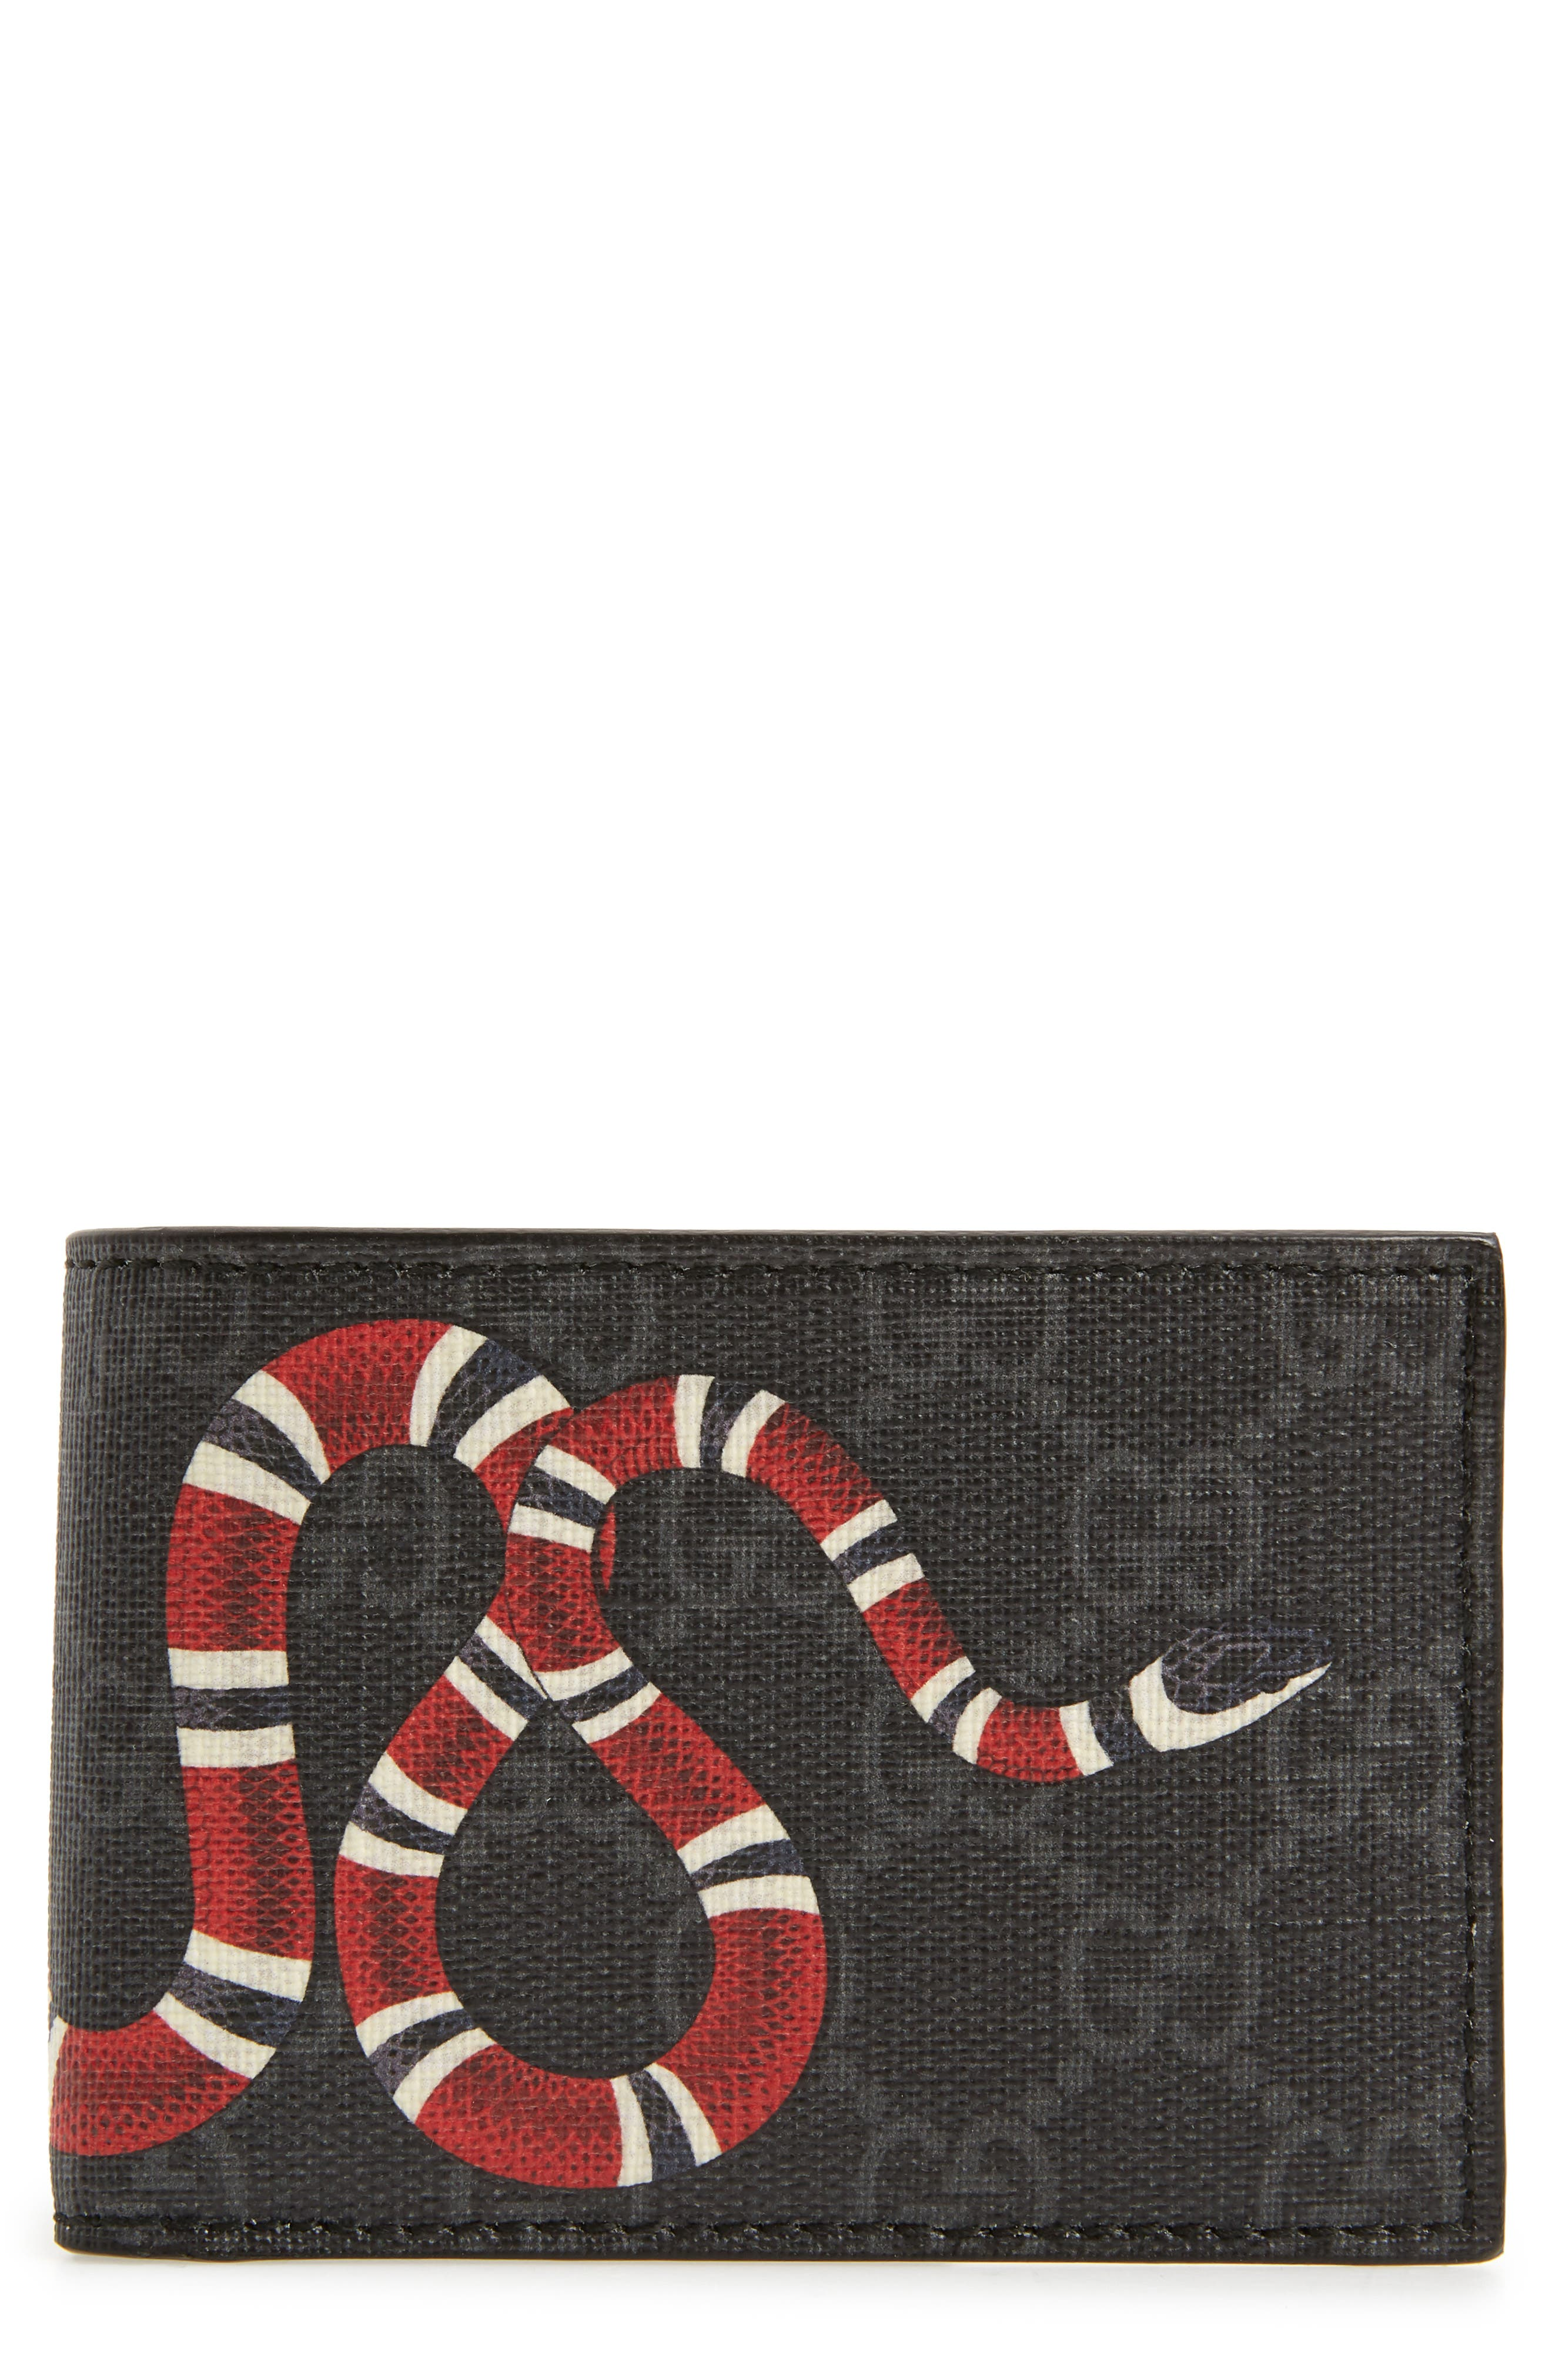 8458d86e16bd Men's Gucci Wallets | Nordstrom